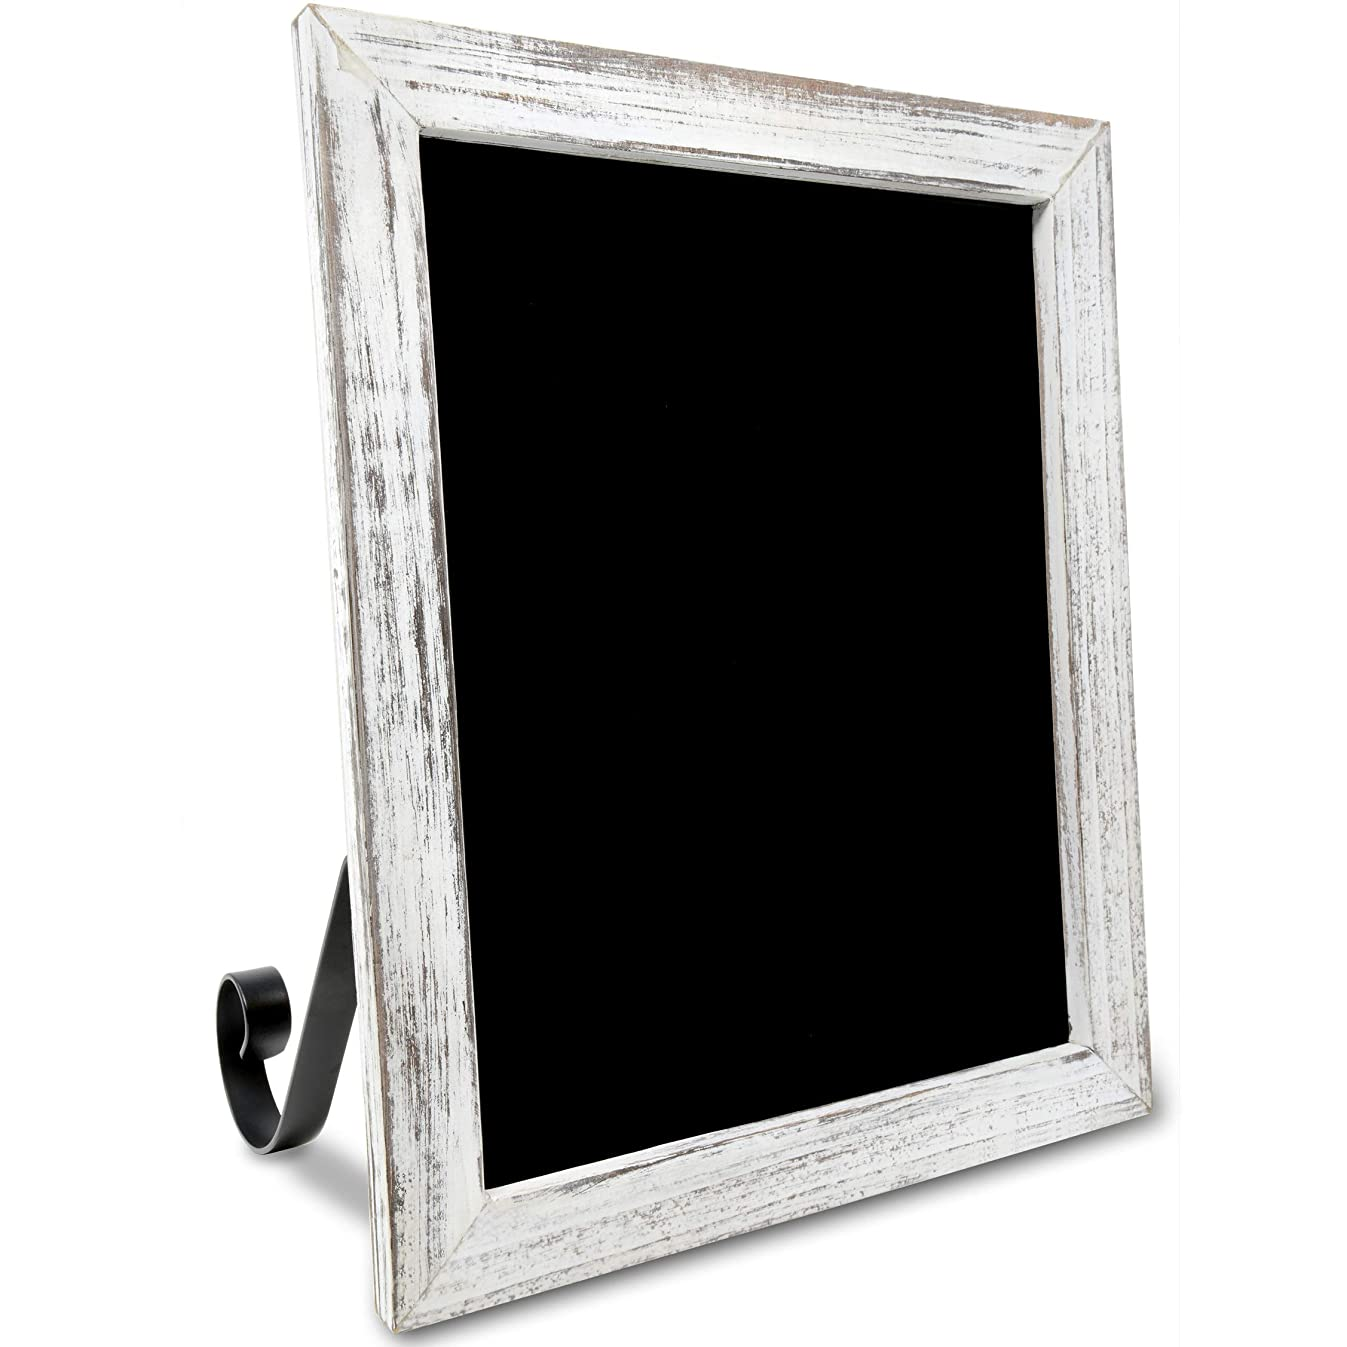 TenXVI Designs 11x13 Hanging or Freestanding Vertical/Horizontal Magnetic Tabletop/Countertop Rustic Chalkboard Sign for Weddings, Farmhouses, Restaurants and Home Decor – White